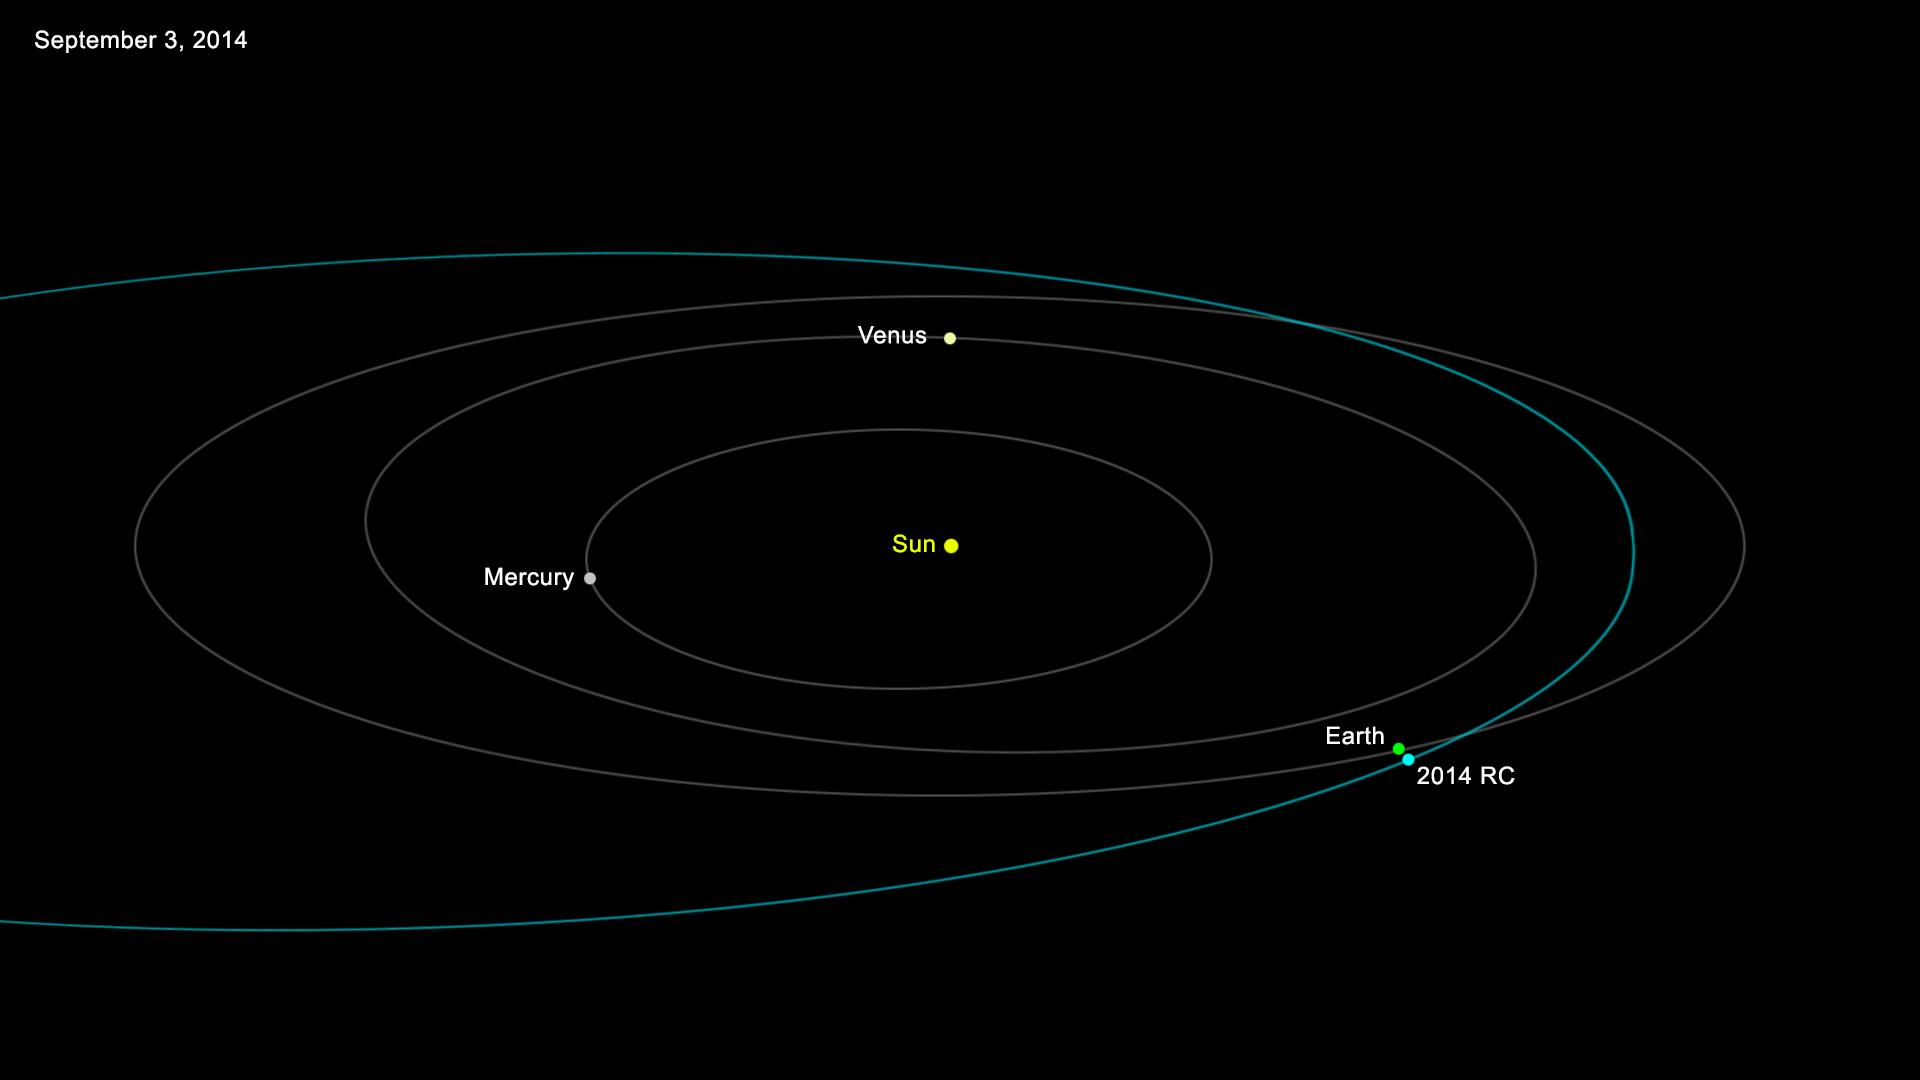 Asteroid 2014 RC Orbit